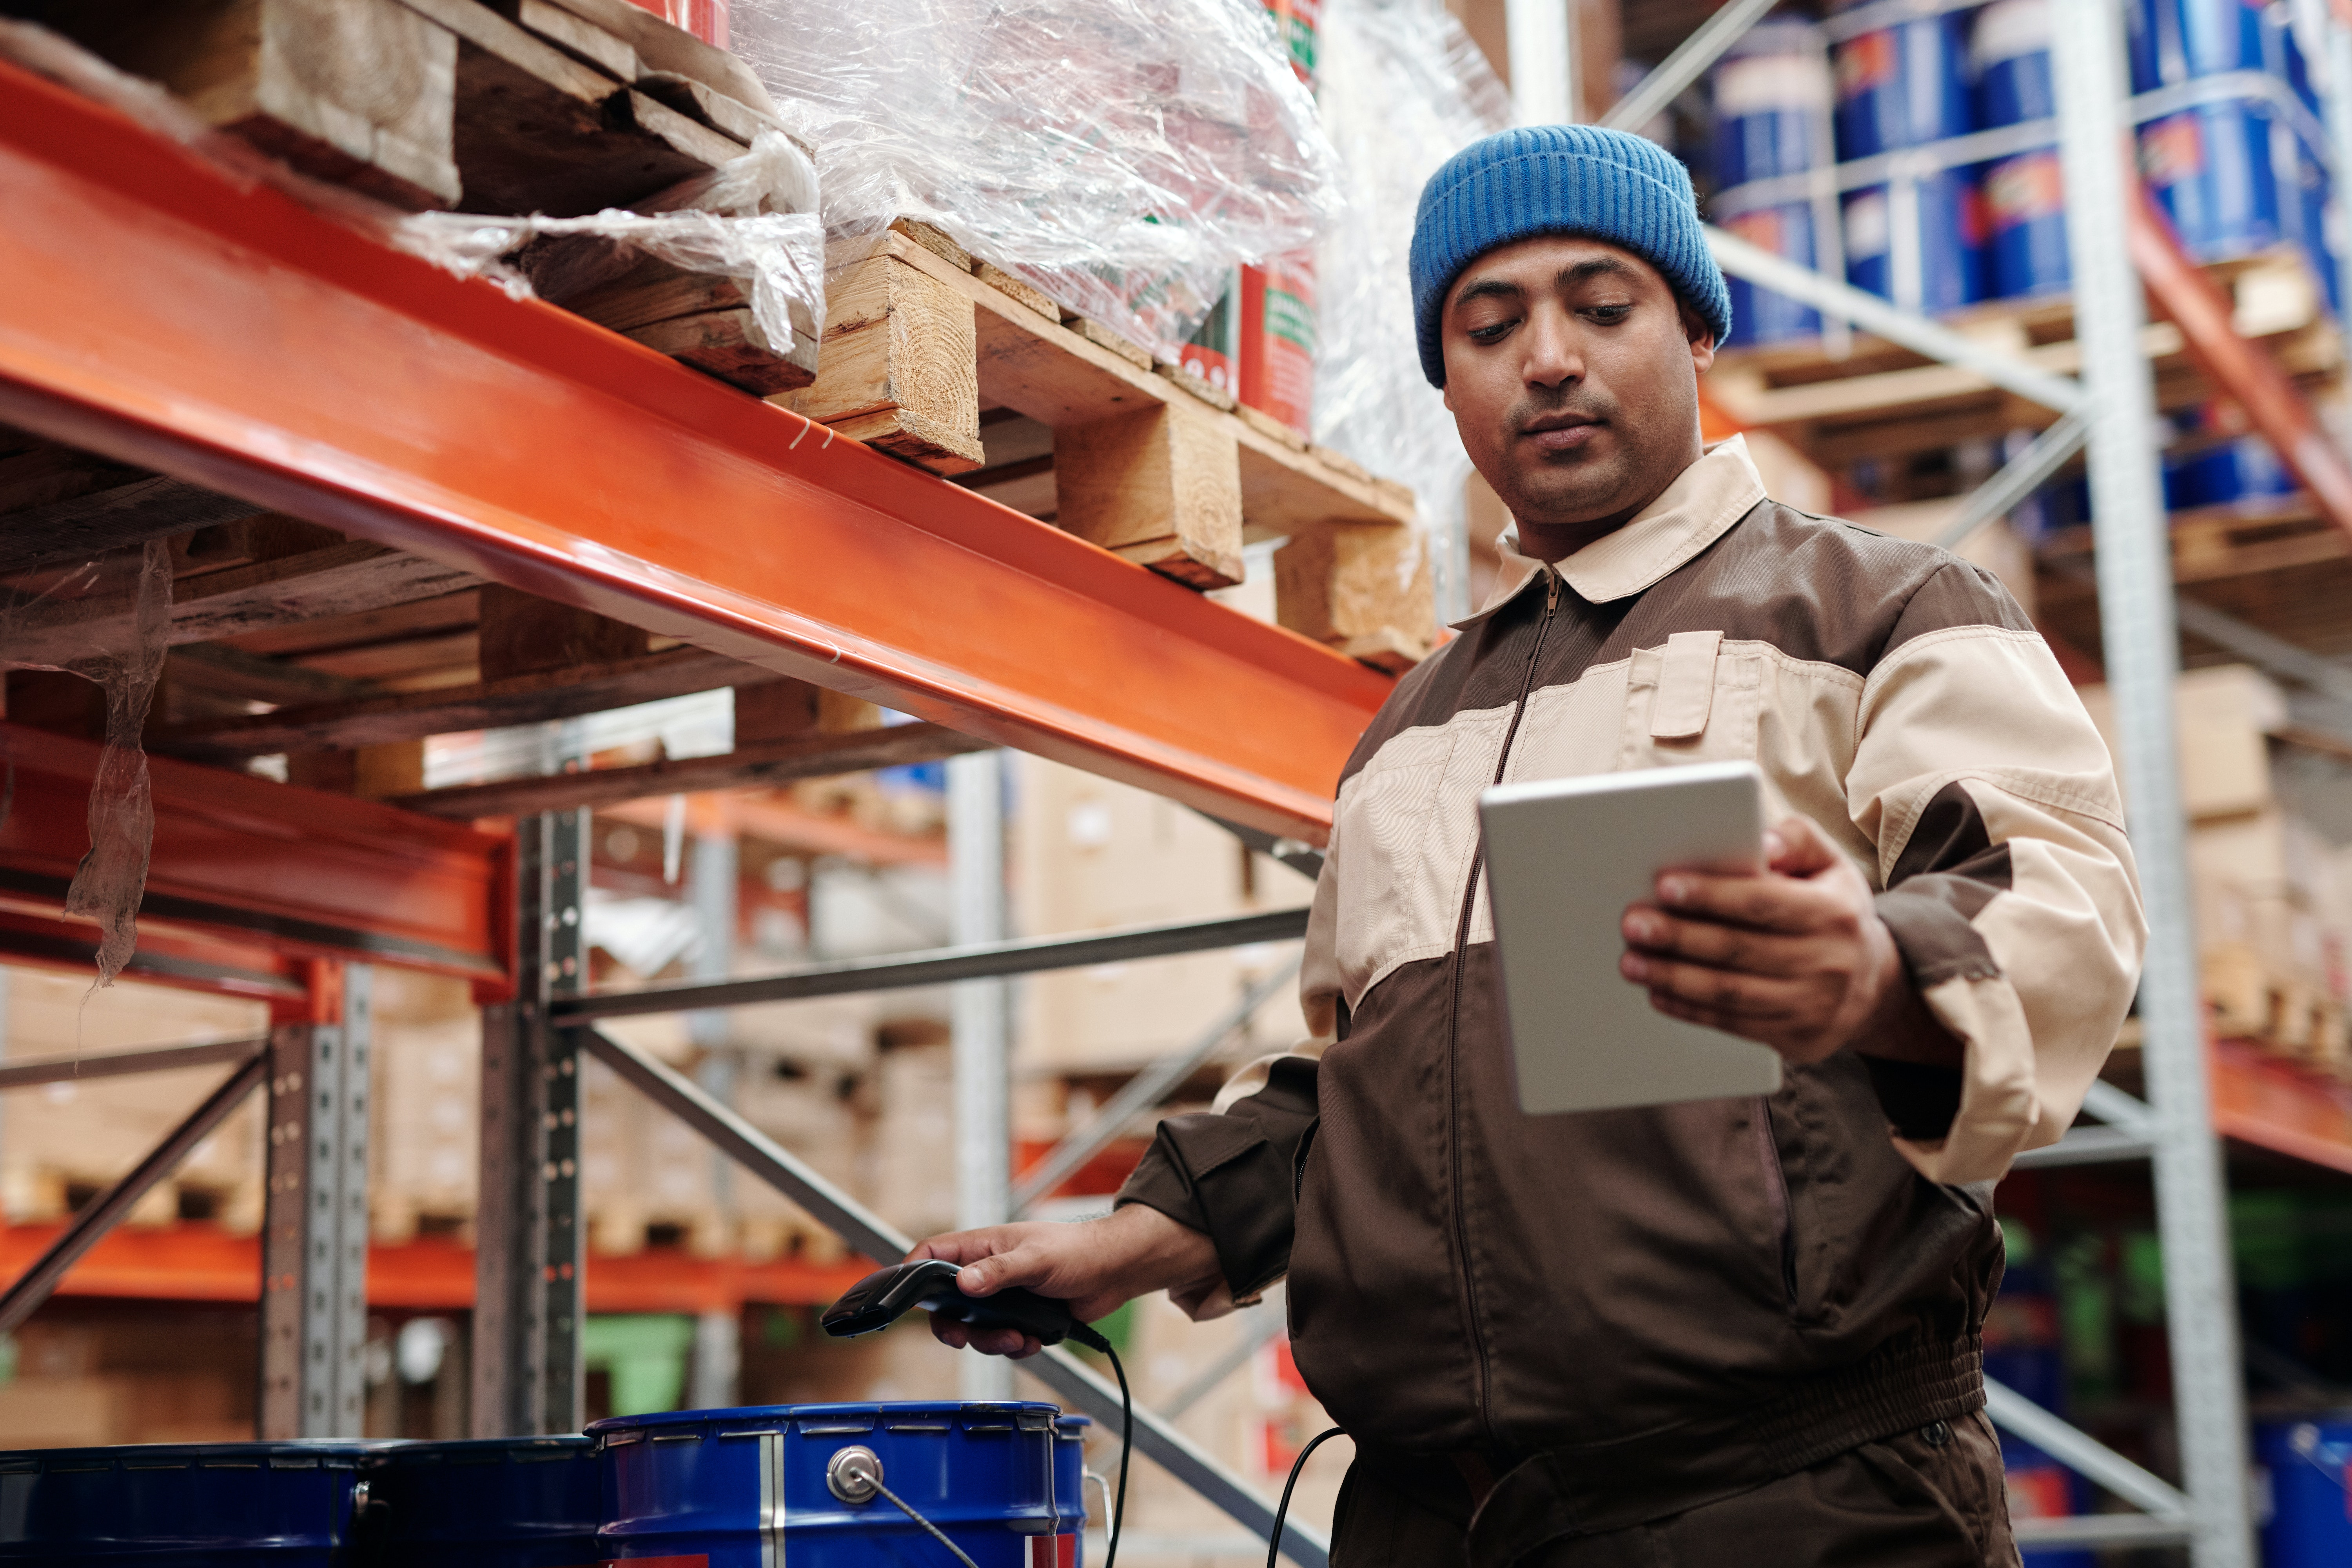 How LTE/5G is enabling operators of warehouse and distribution centres to optimize how they do business